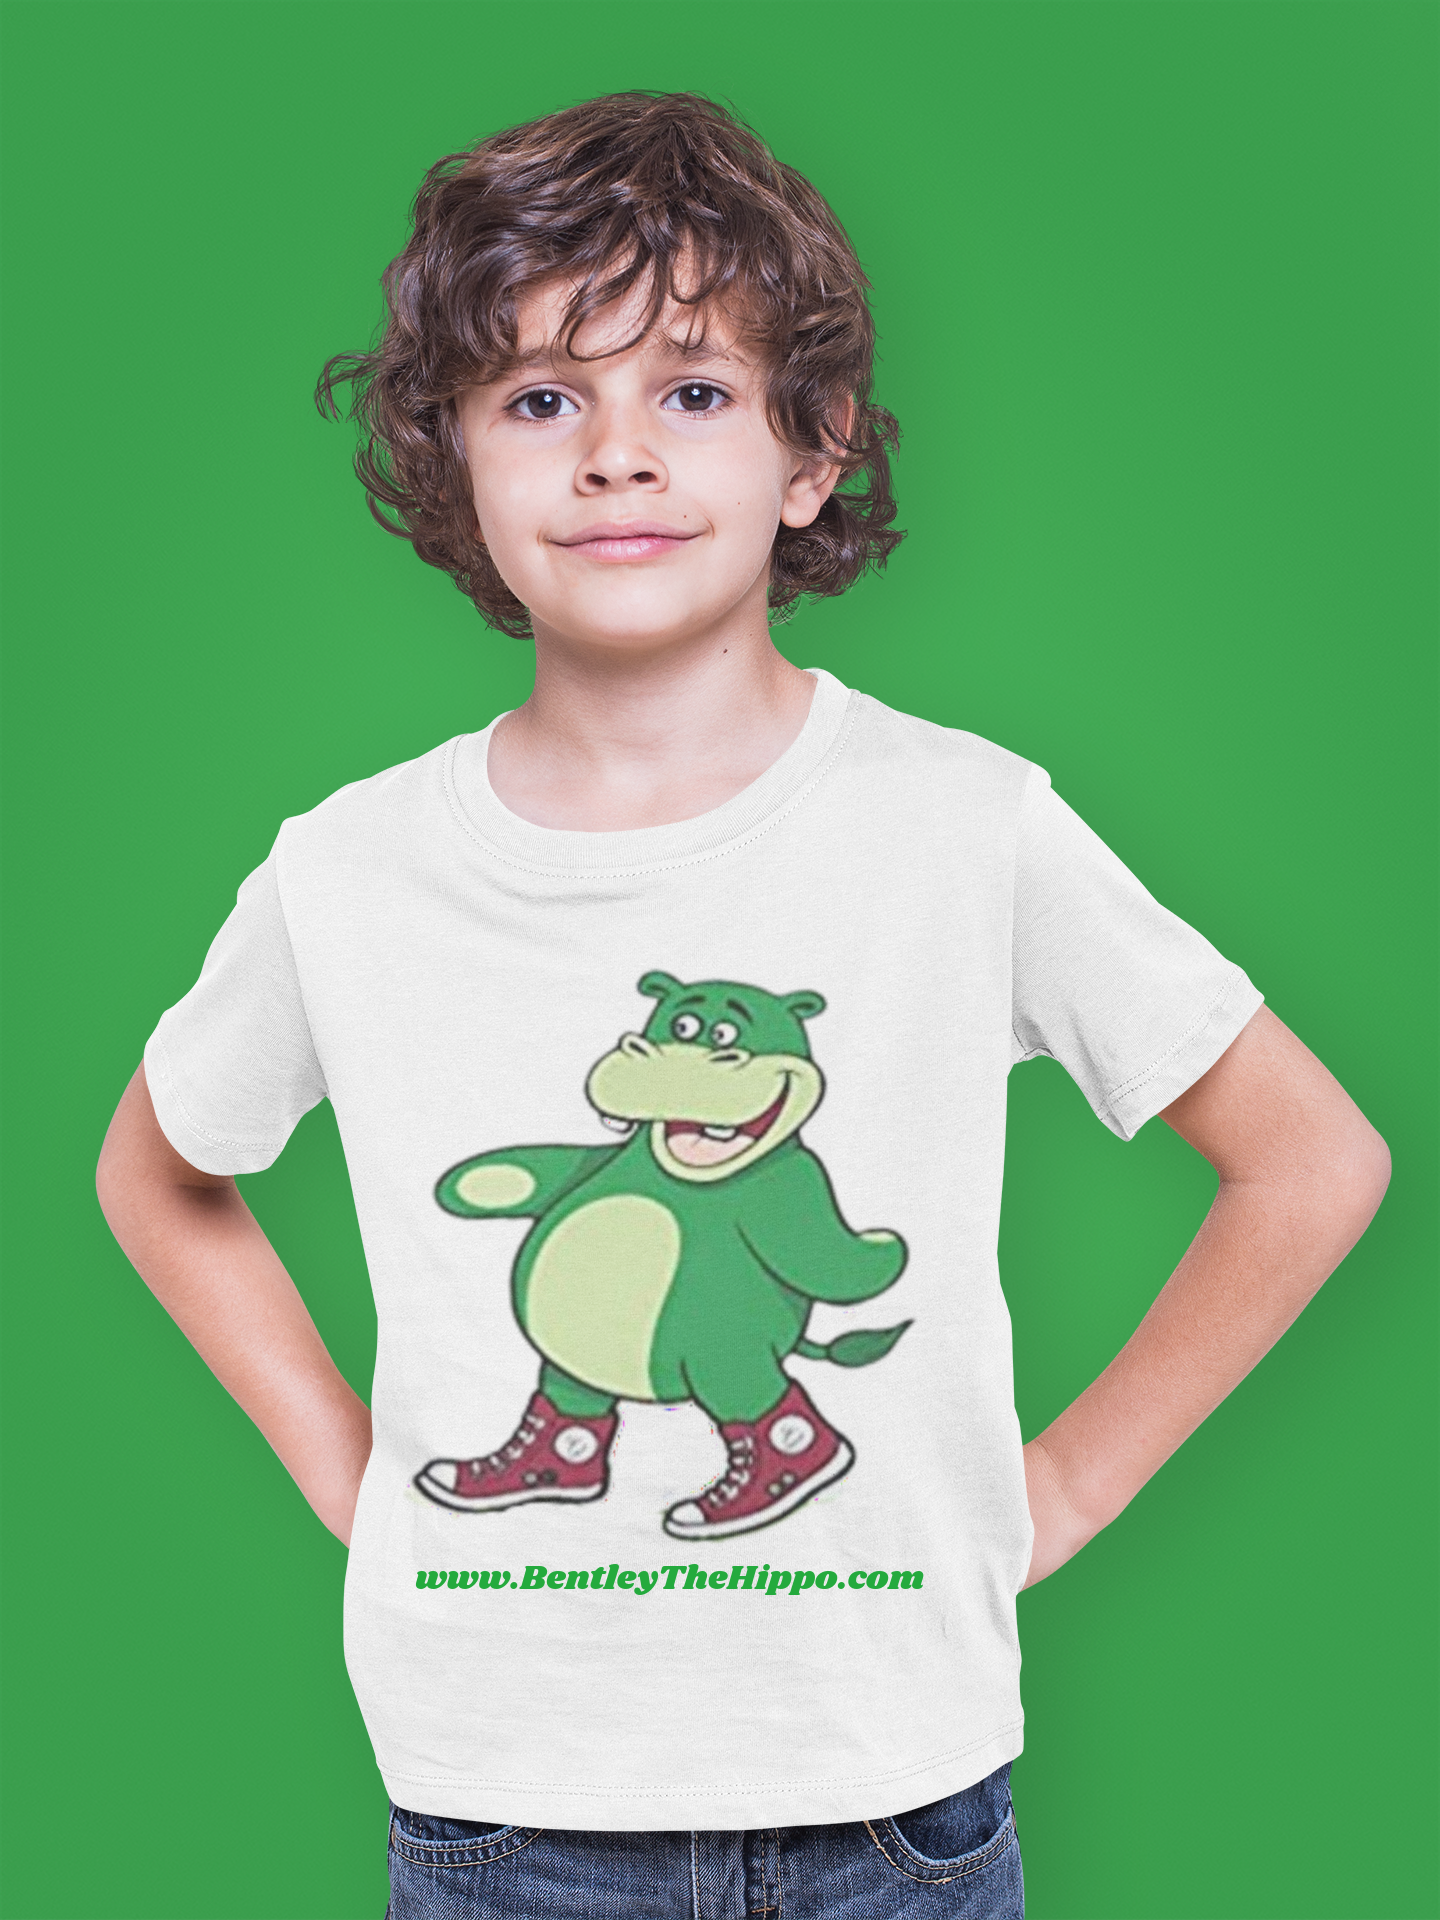 https://www.wilsdomain.com/pages/bentley-the-hippo-book/Bentley-The-Hippo-T-Shirt.png